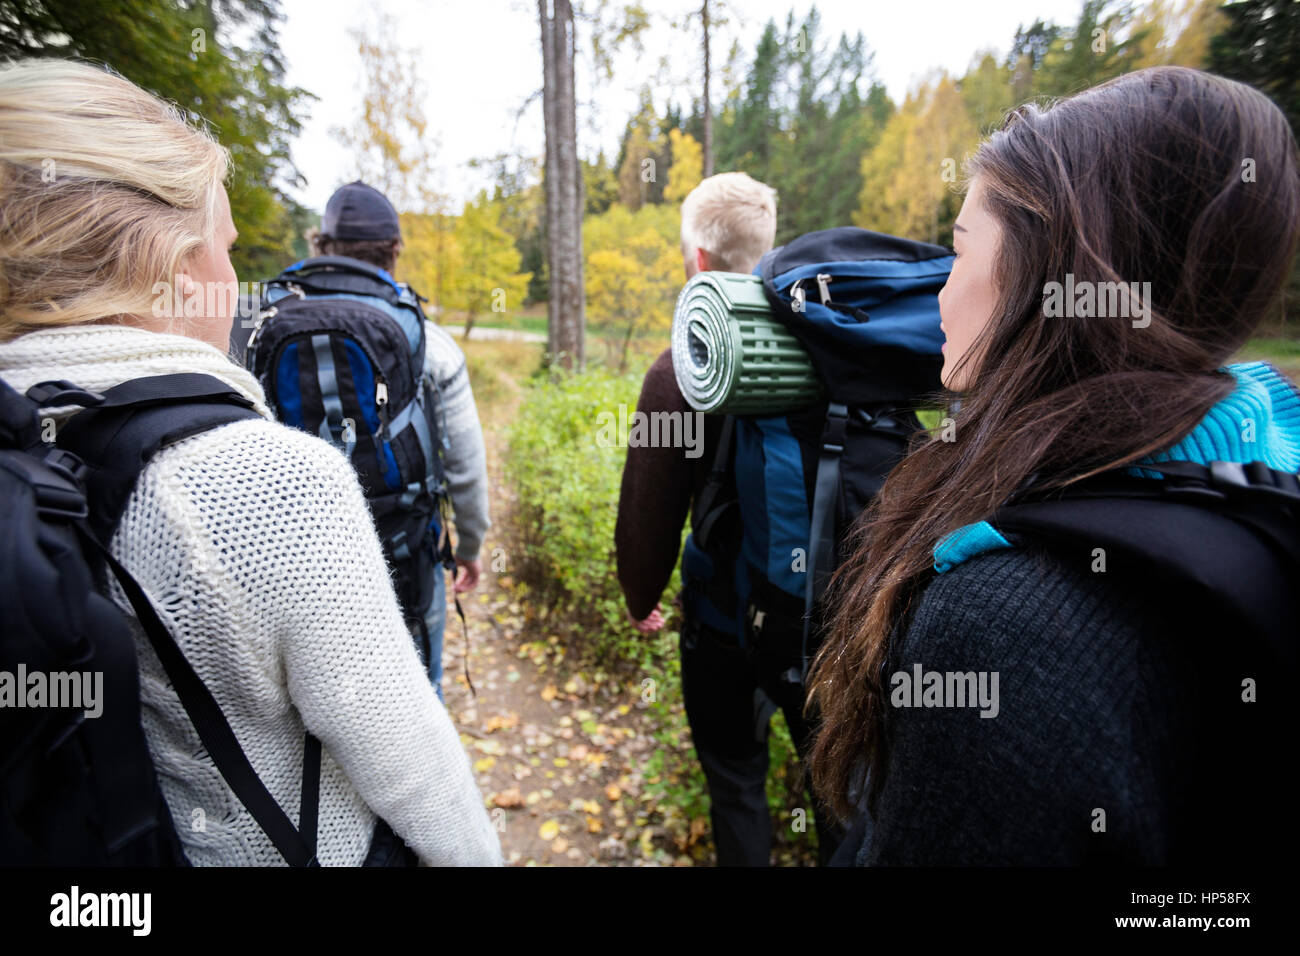 Hikers With Backpacks Walking On Forest Trail - Stock Image